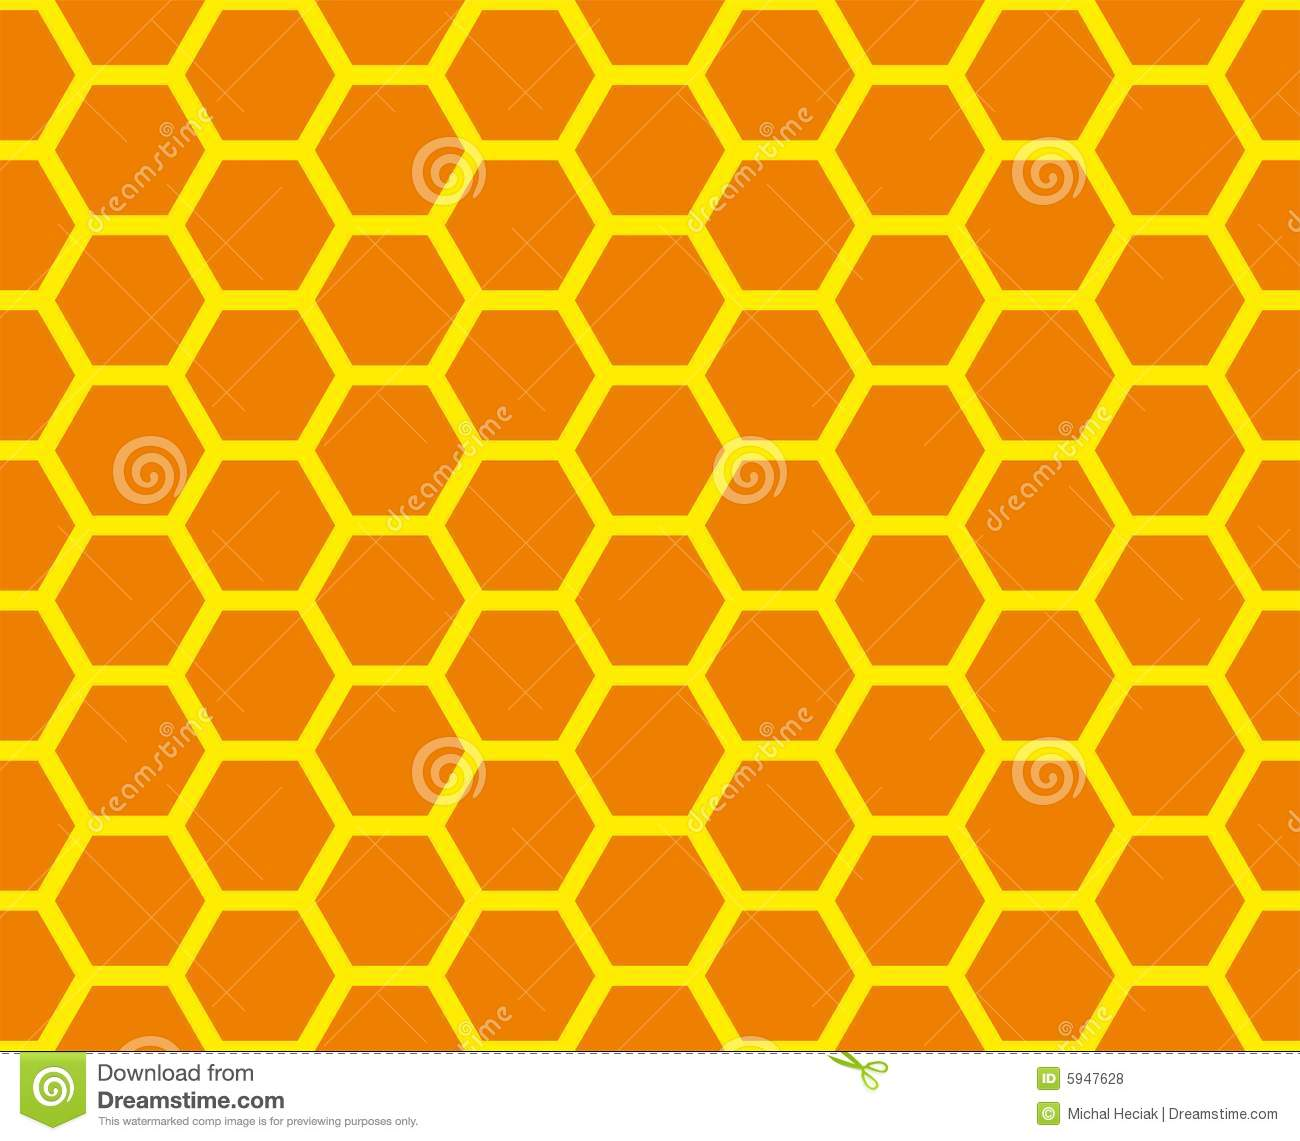 Yellow honey background with hexagonal pattern vector free download - Honeycomb Grid Royalty Free Stock Photos Image 5947628